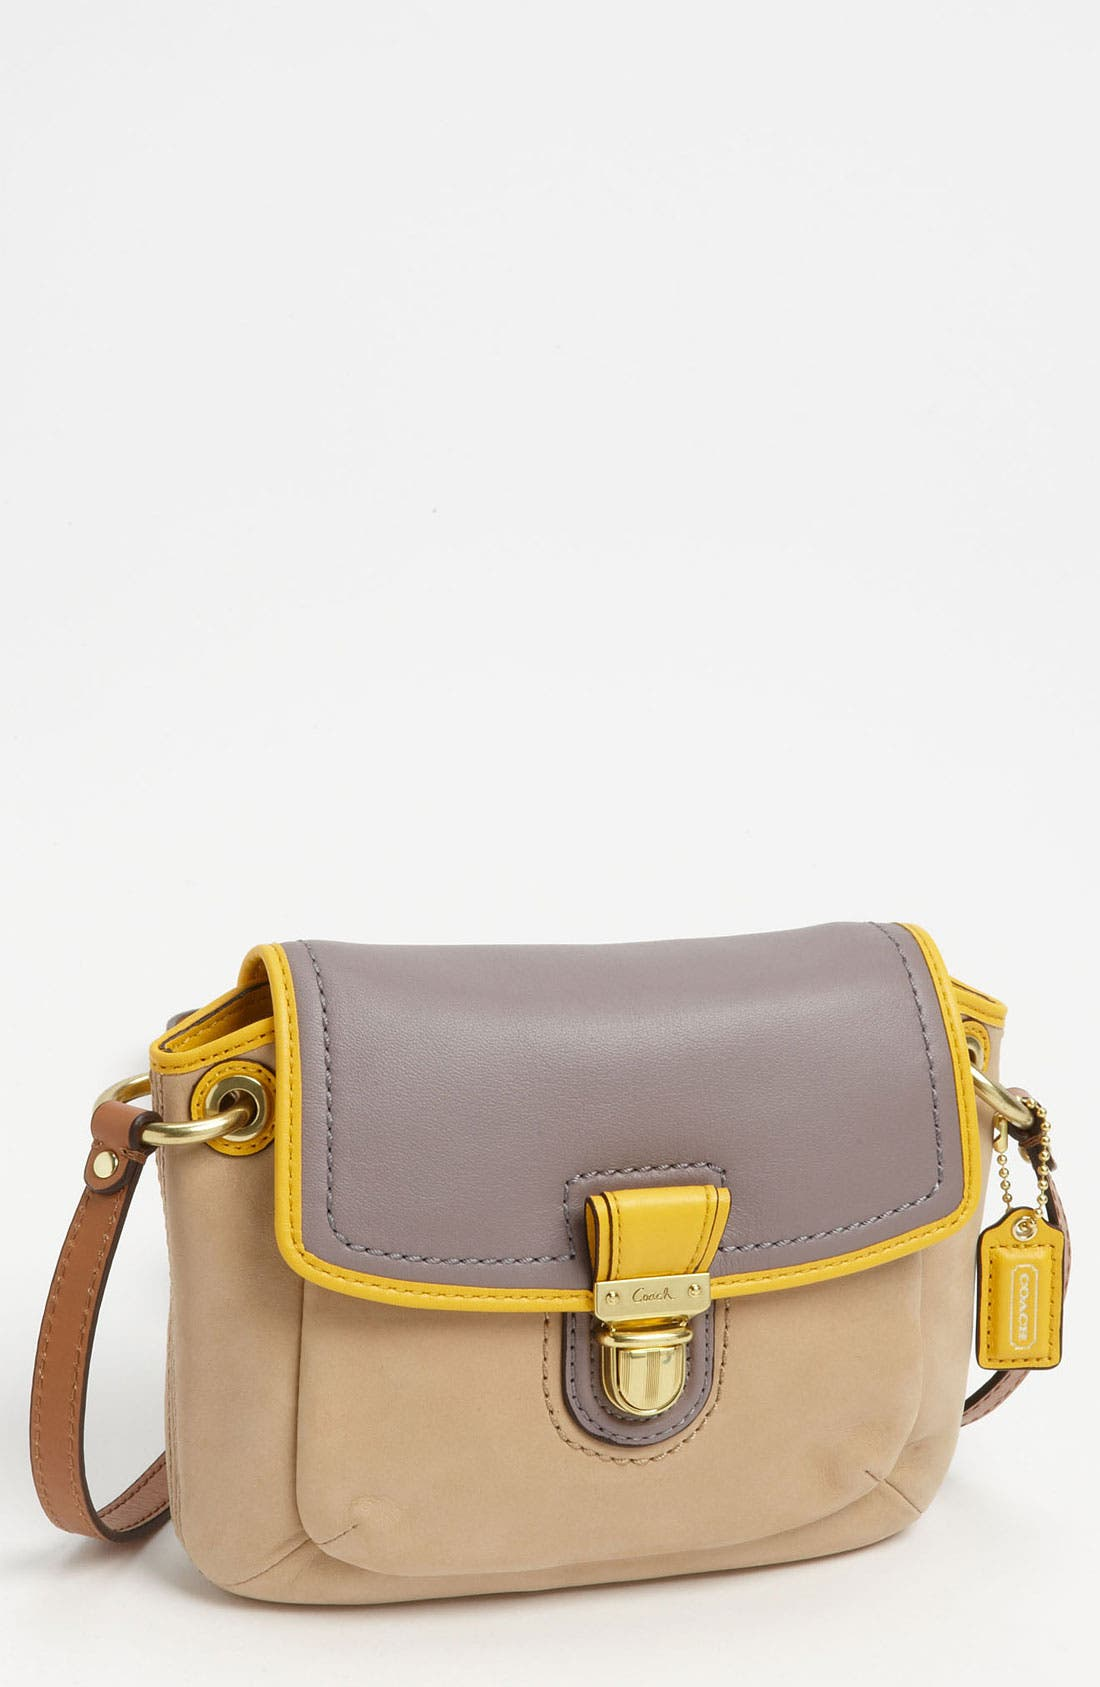 Alternate Image 1 Selected - COACH 'Poppy - Colorblock' Leather Crossbody Bag